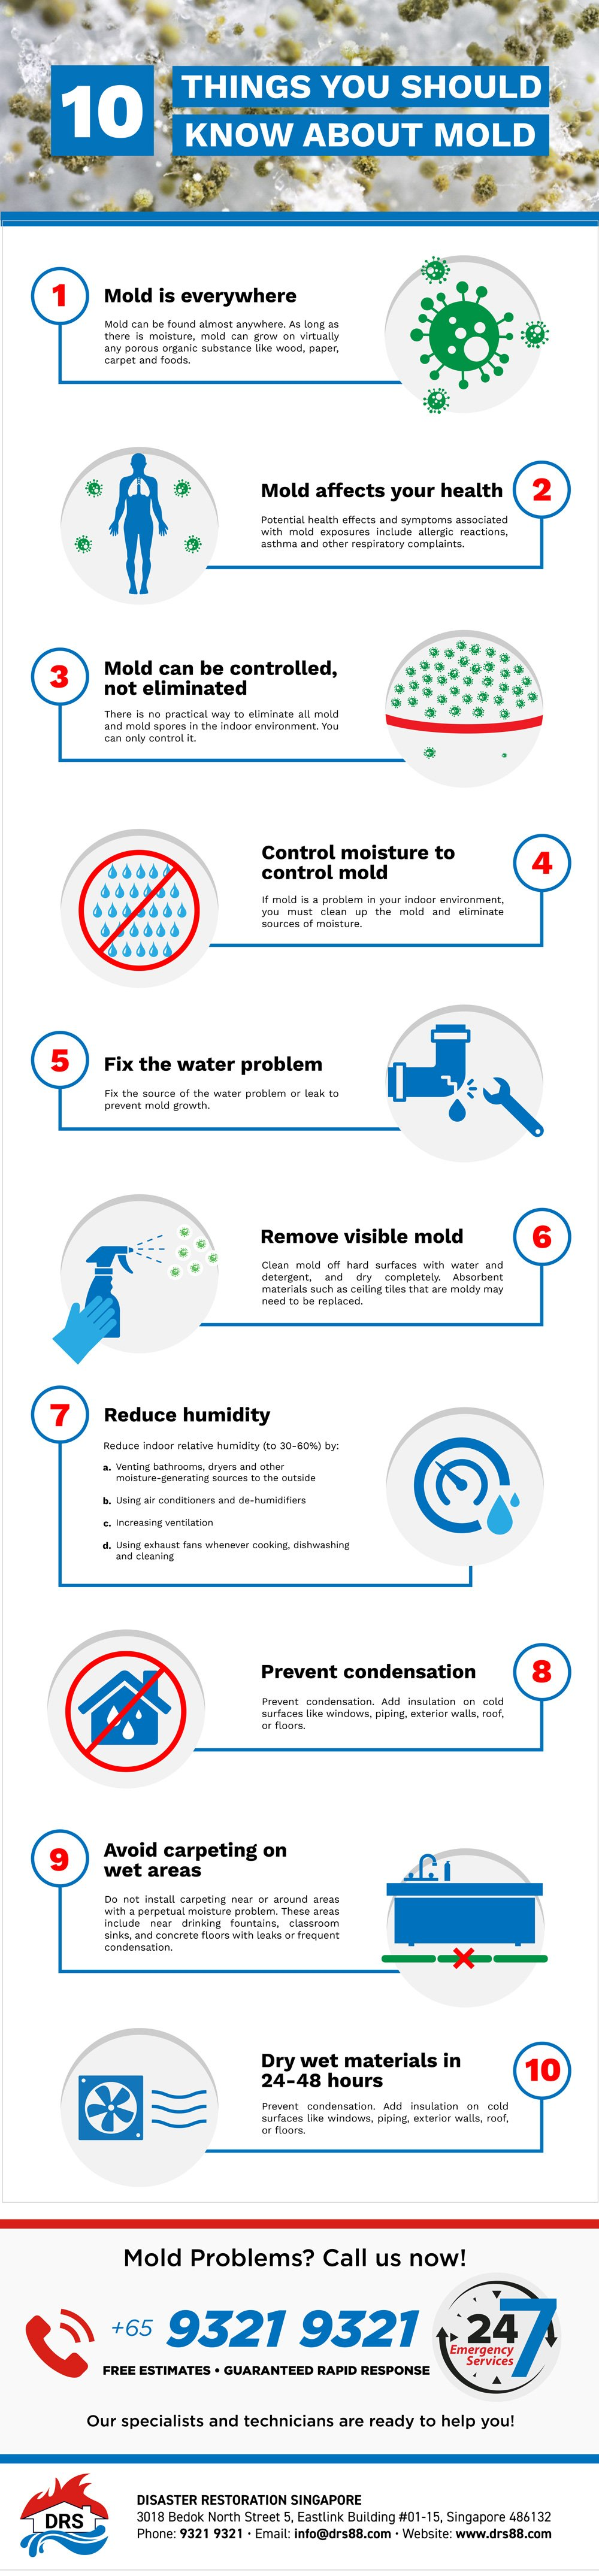 Mold Infographic Singapore - 10 Things You Should Know About Mold